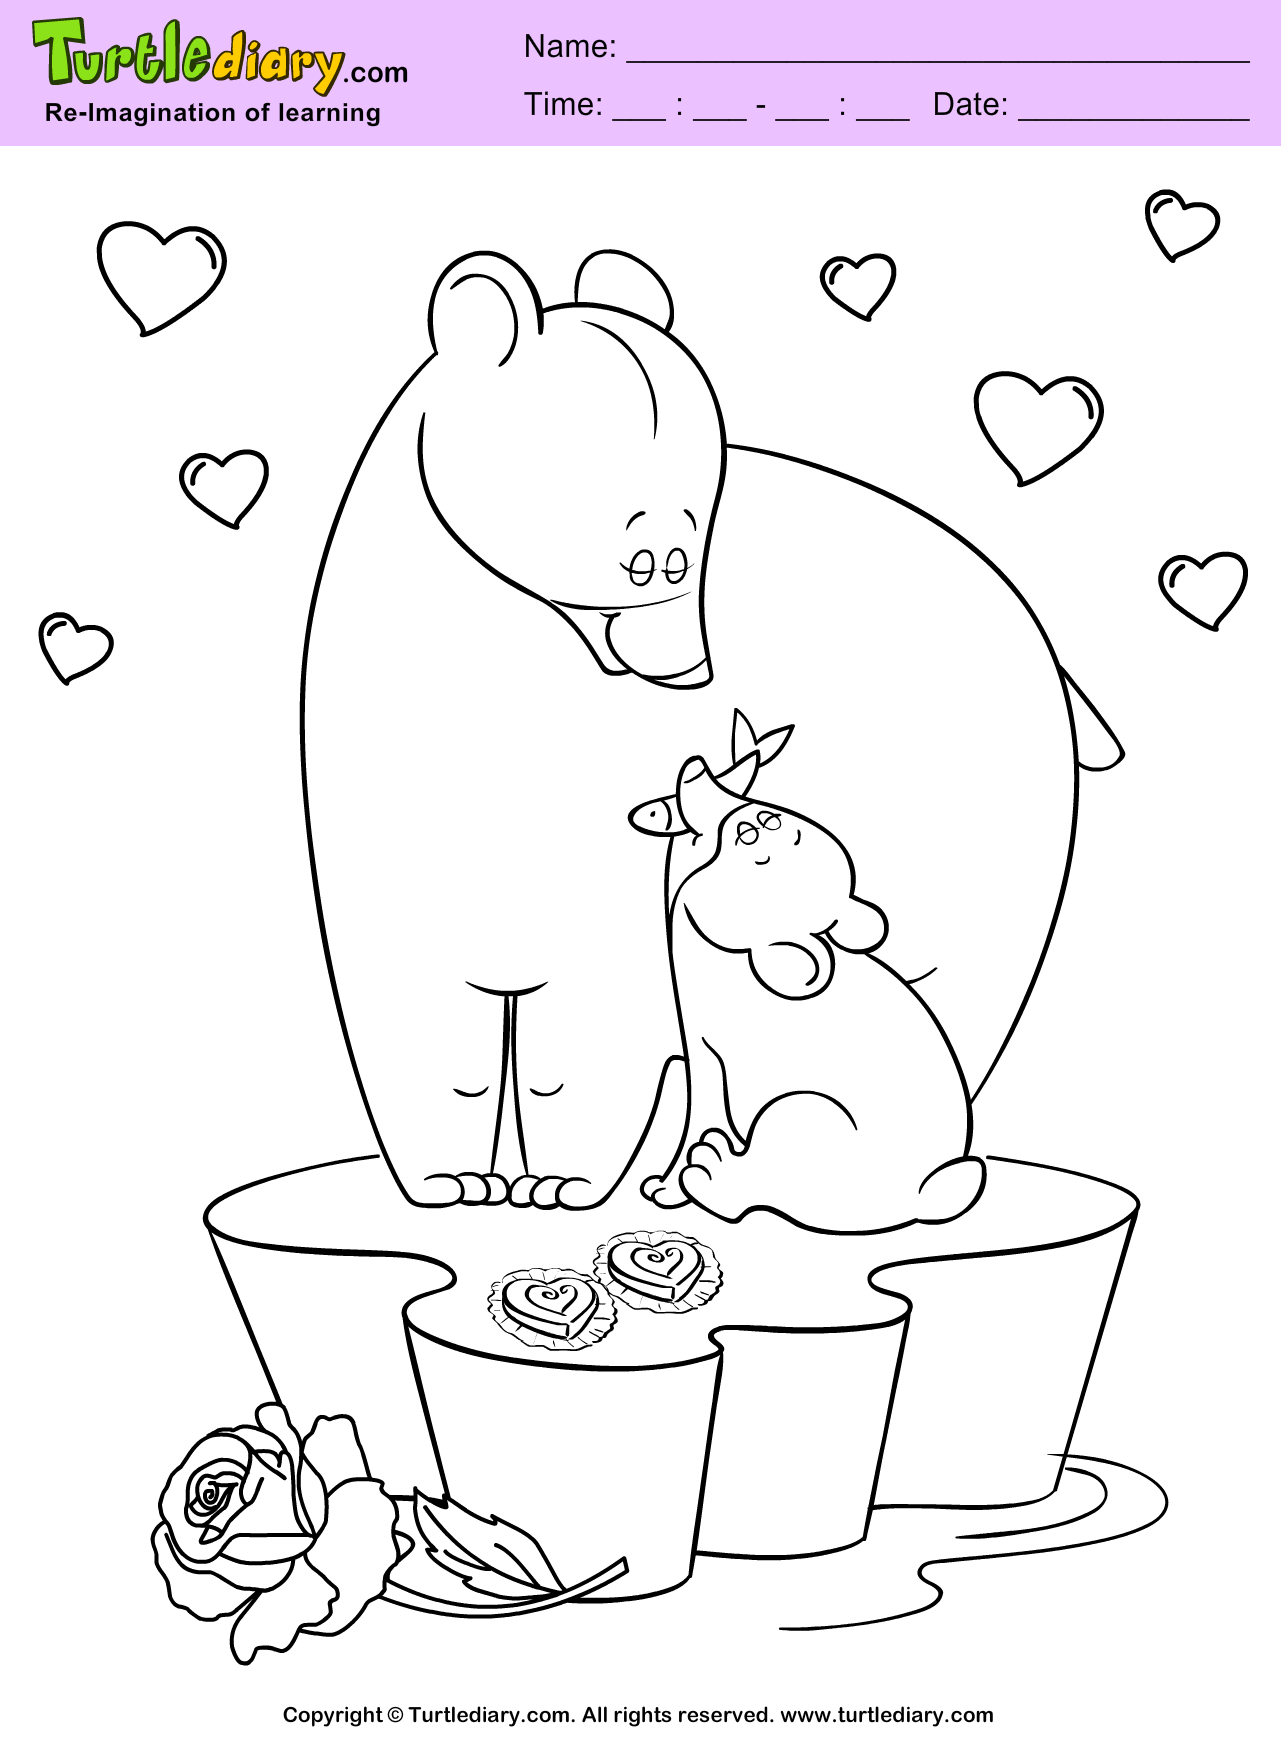 Bears Valentine Day Coloring Sheet